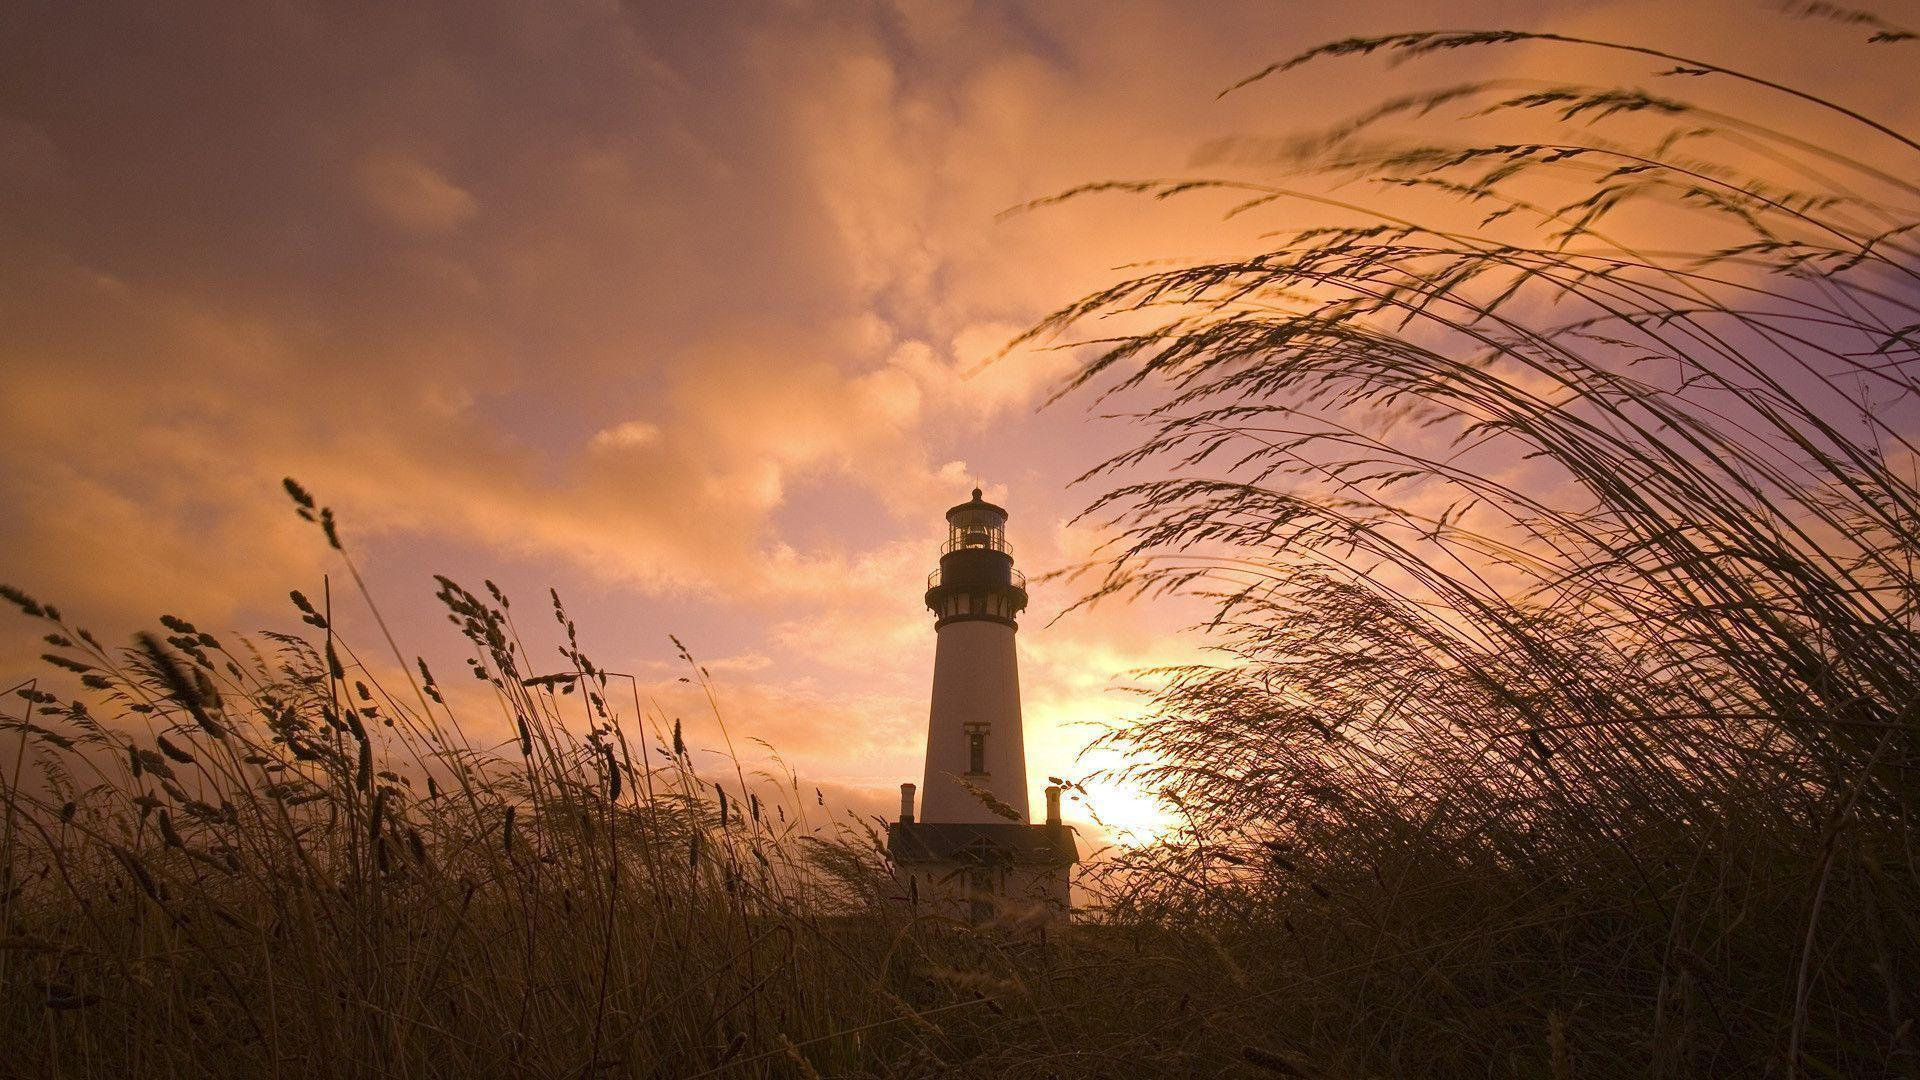 481 Lighthouse Wallpapers | Lighthouse Backgrounds Page 6